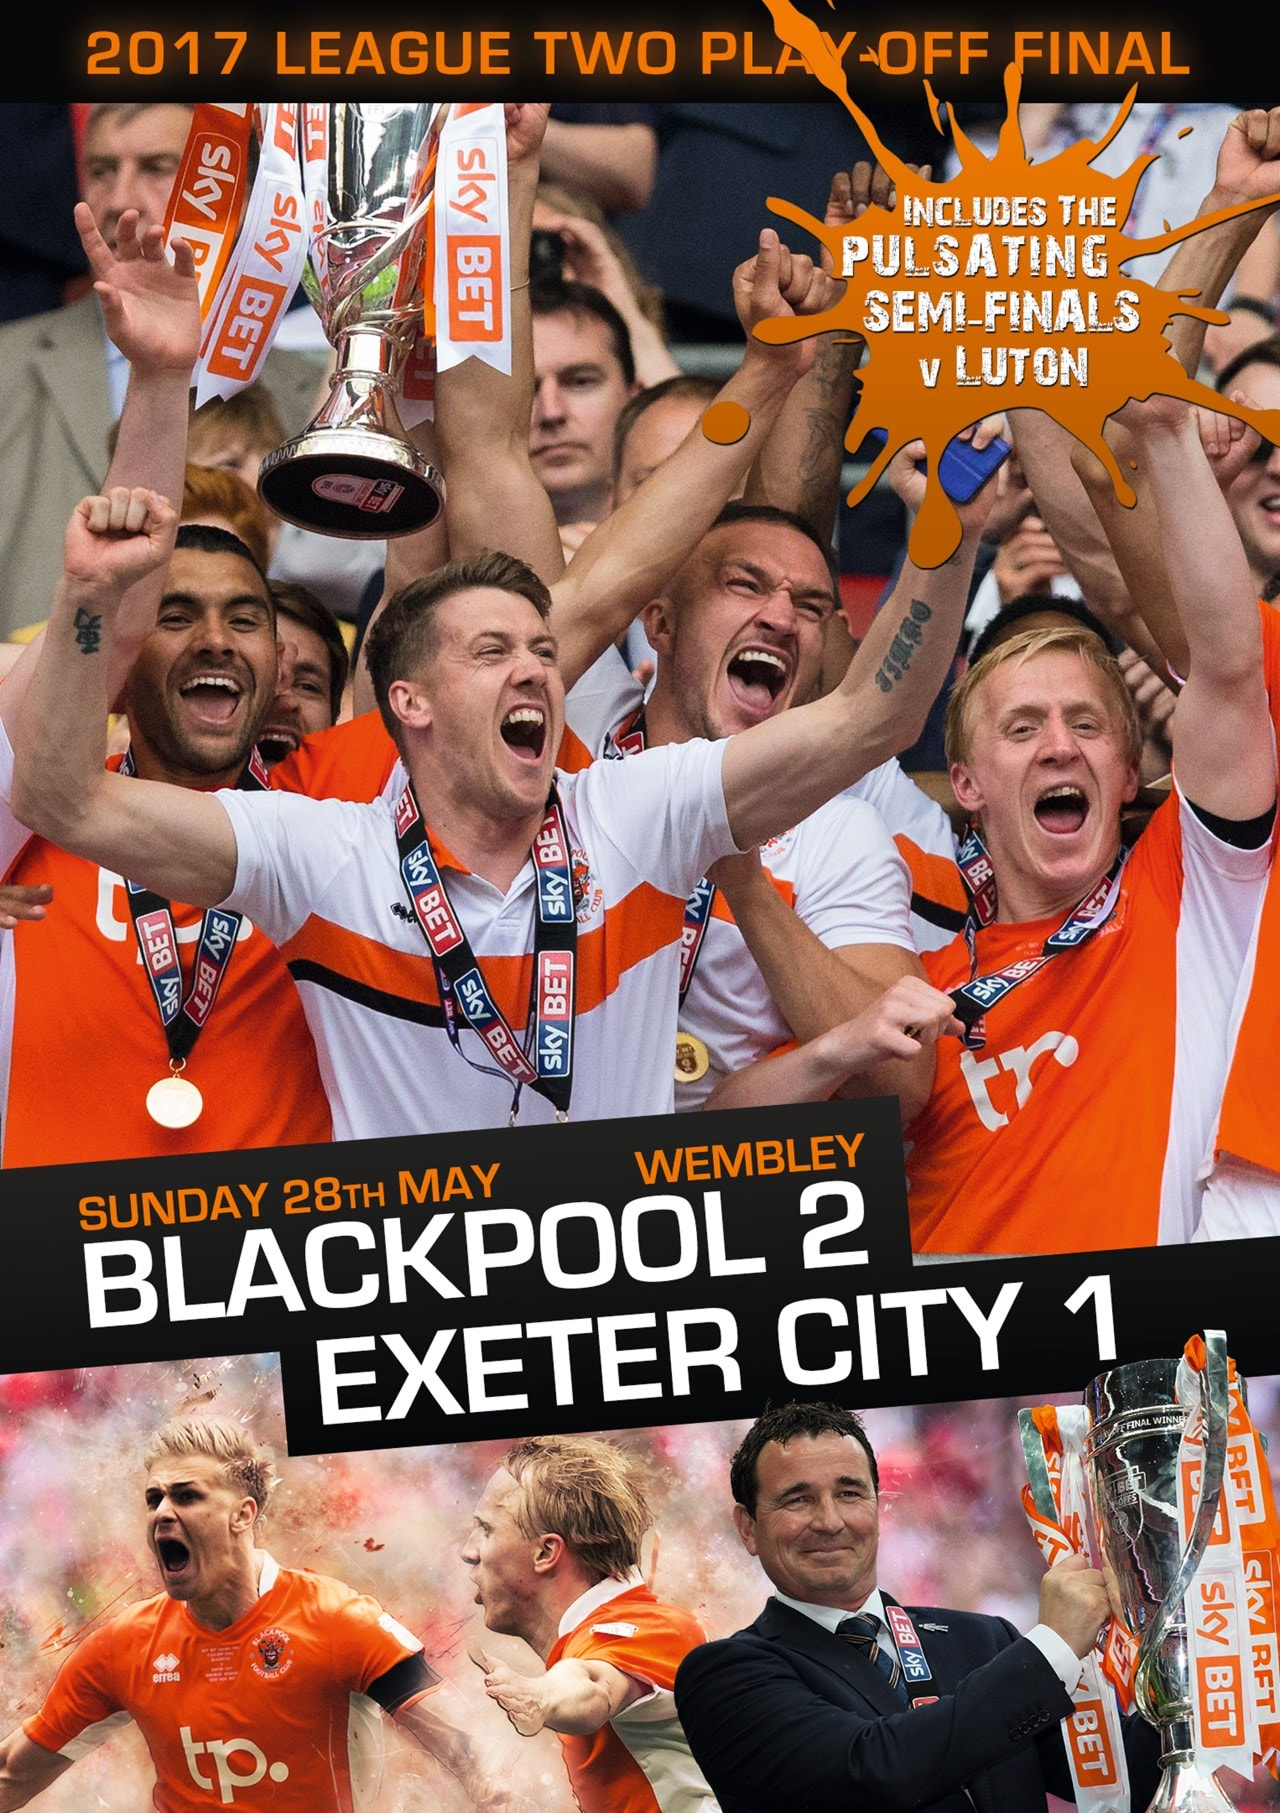 2017 League Two Play-off Final: Blackpool 2-1 Exeter City - 1